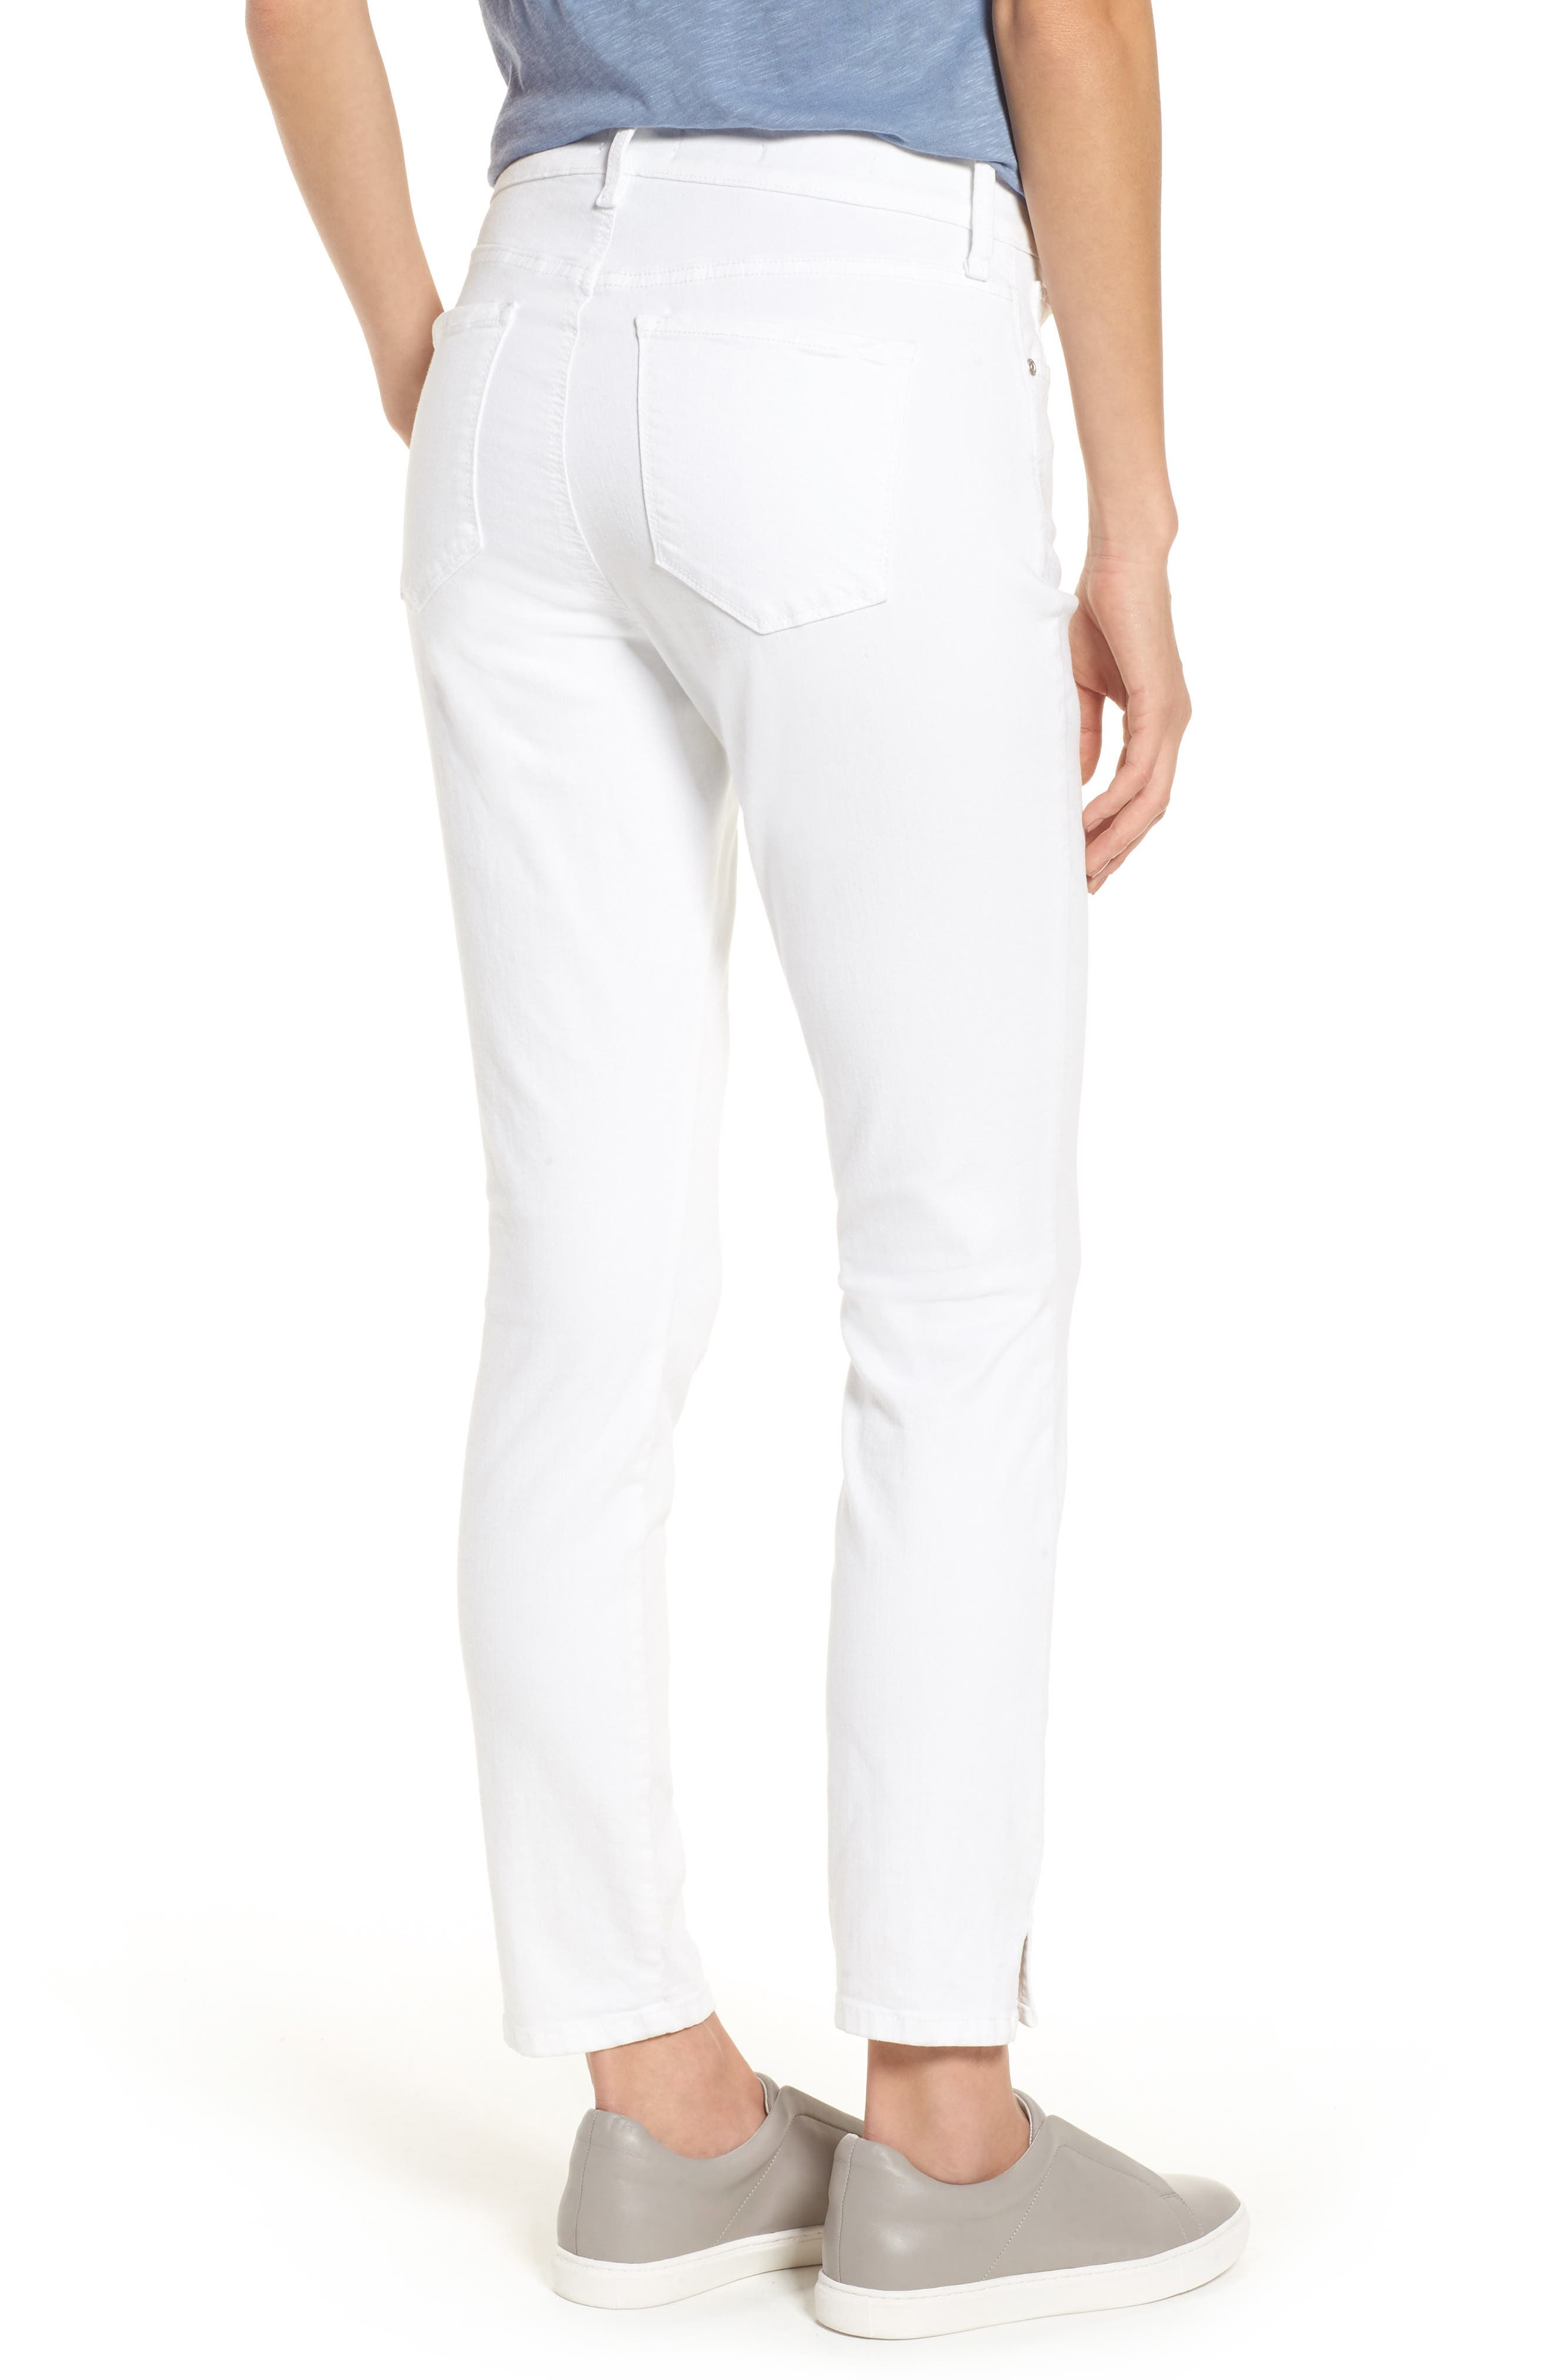 Ami Stretch Ankle Skinny Jeans,                             Alternate thumbnail 2, color,                             Optic White